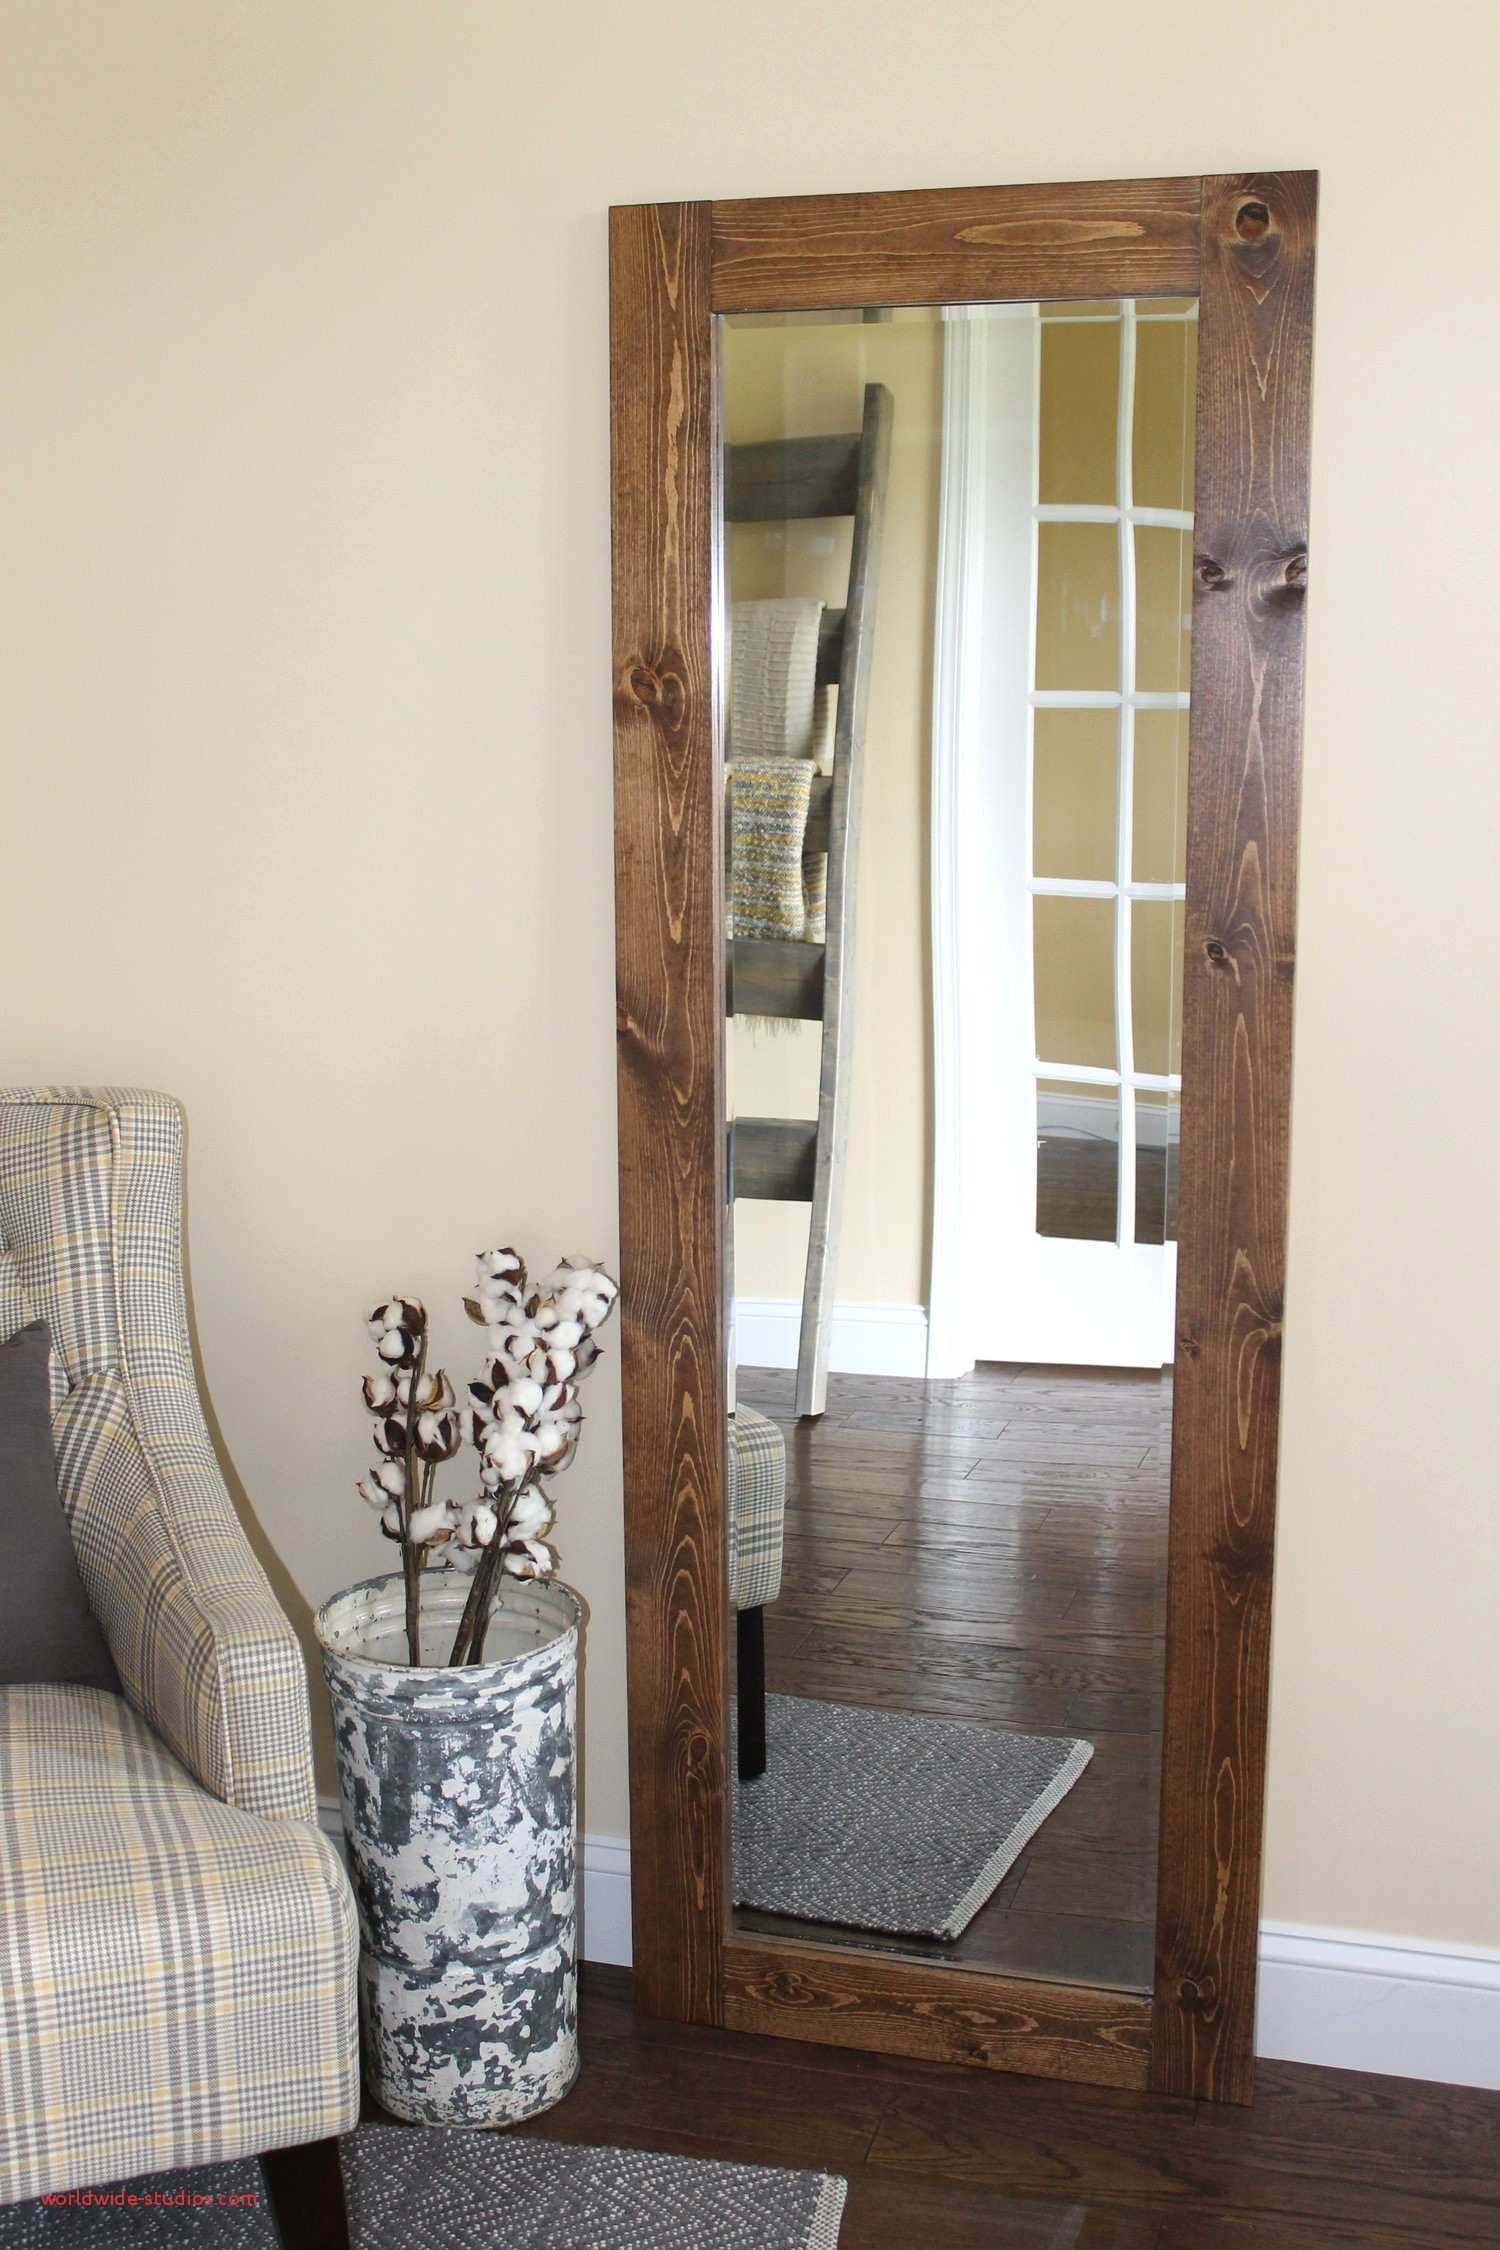 Top Result Diy Wood Frame for Mirror Inspirational Stunning Rustic